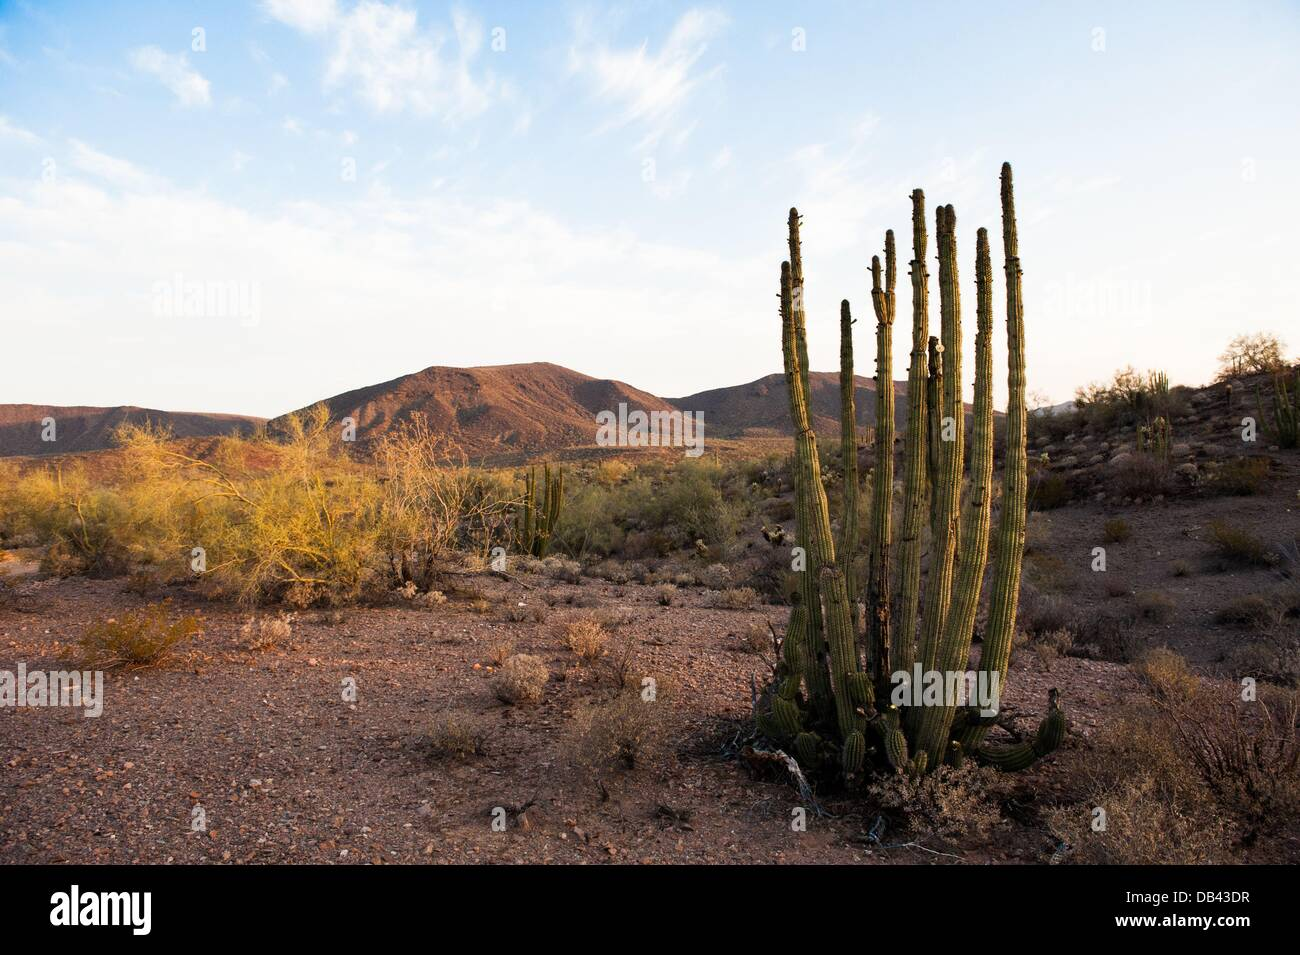 June 13, 2013 - Lukeville, Arizona, United States - An organ pipe cactus seen in a closed-to-the-public part of Stock Photo